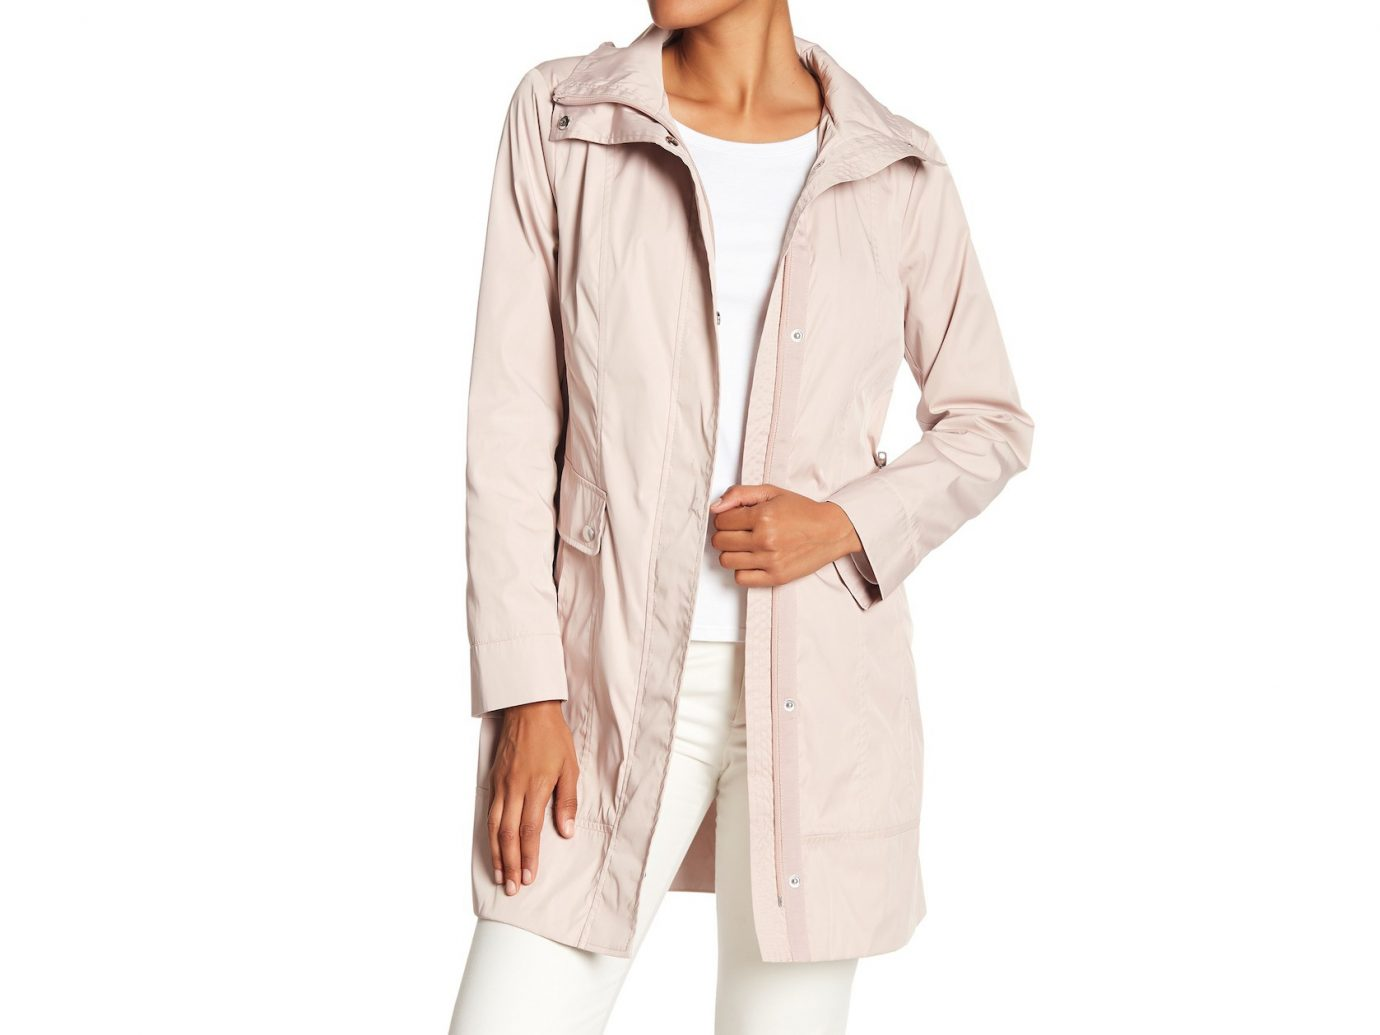 Cole Haan Double Face Packable Rain Jacket